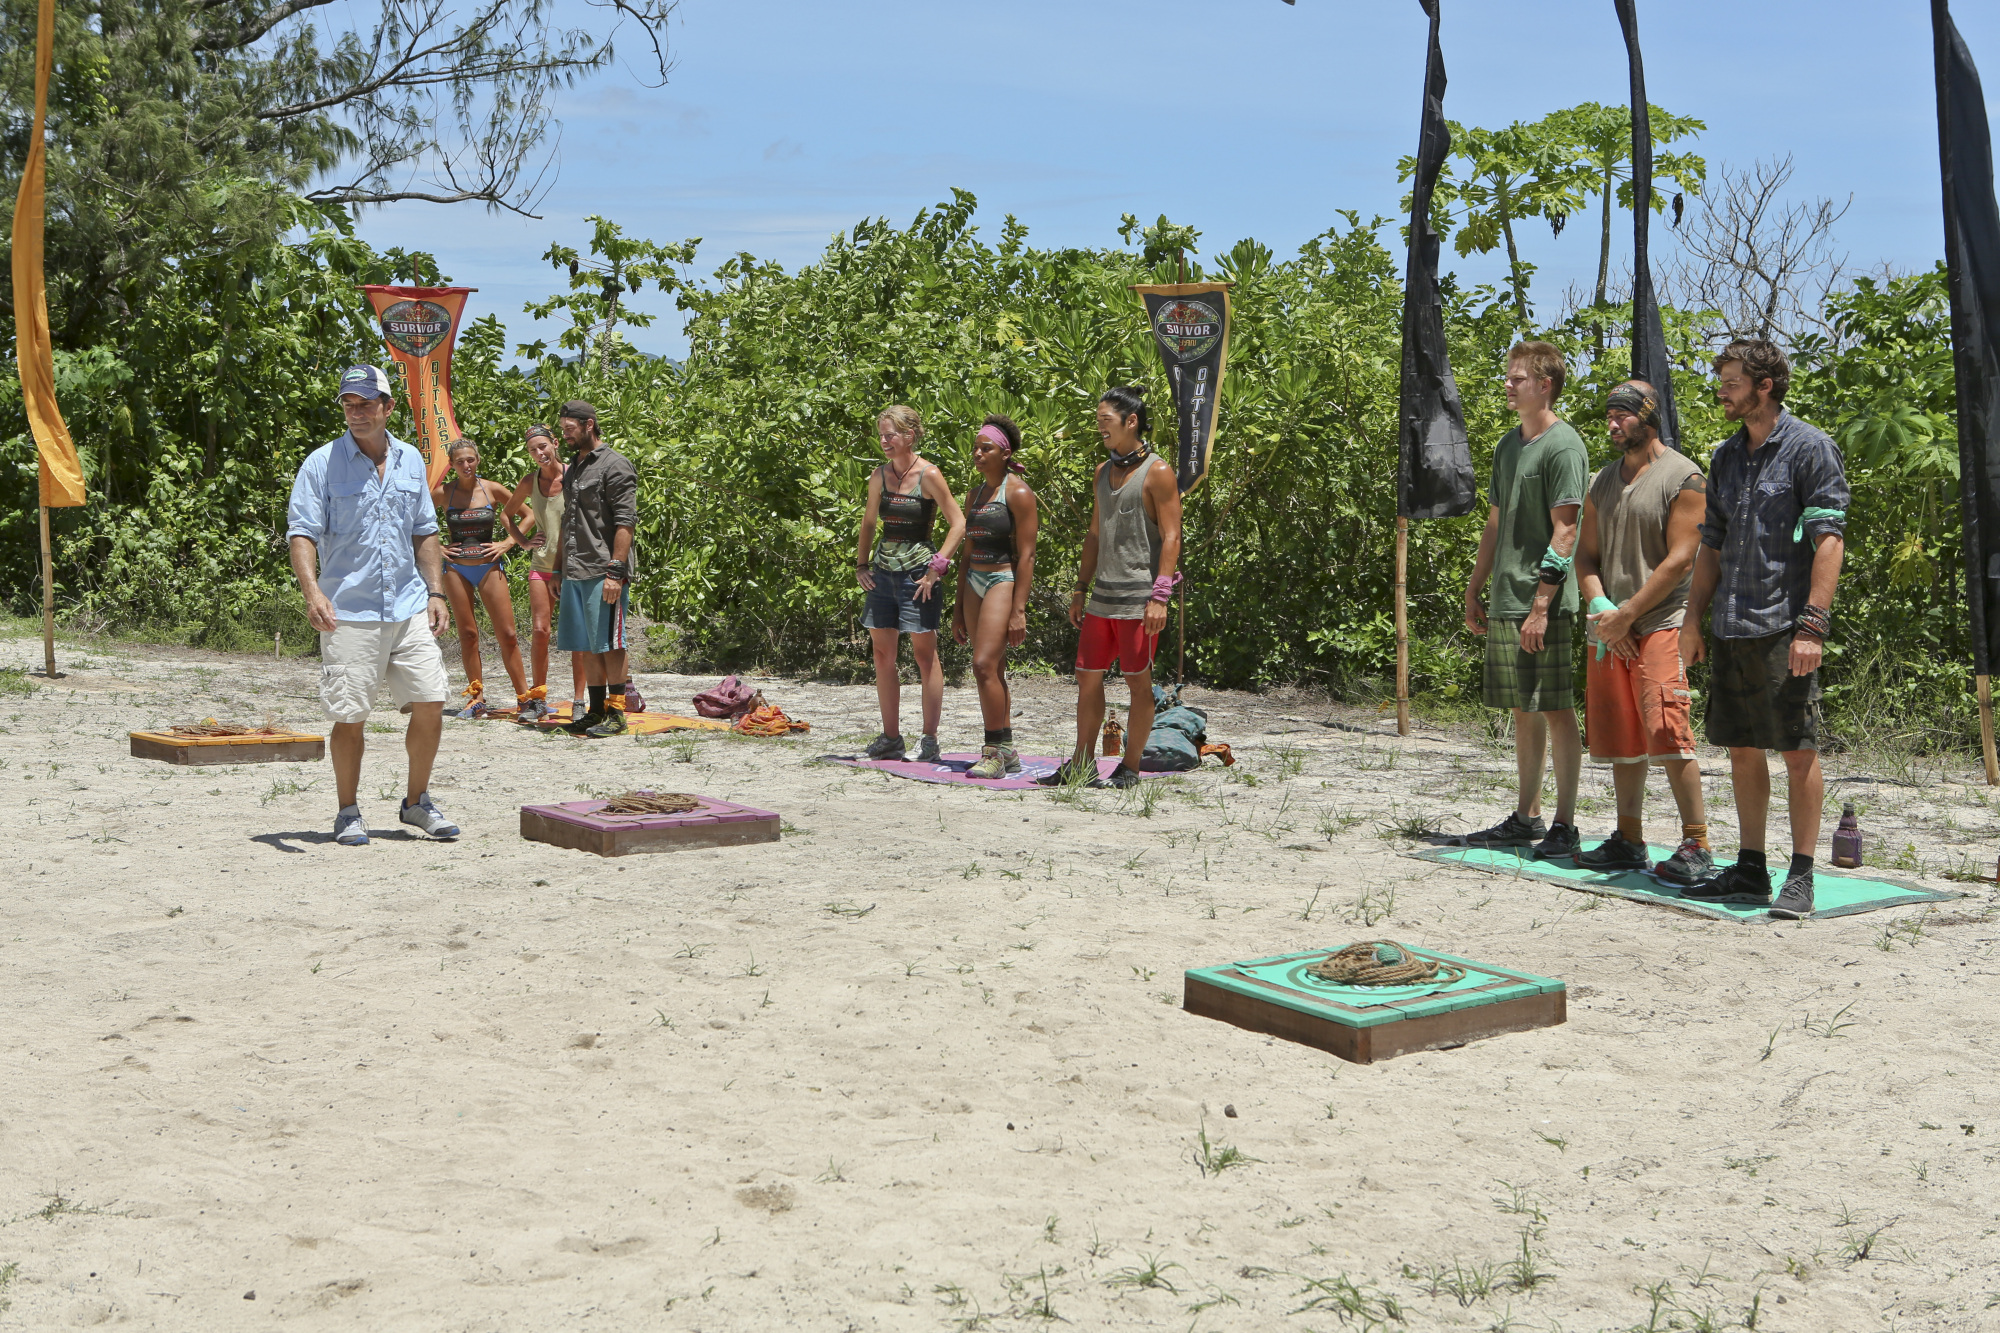 Getting ready to compete in Season 28 Episode 8